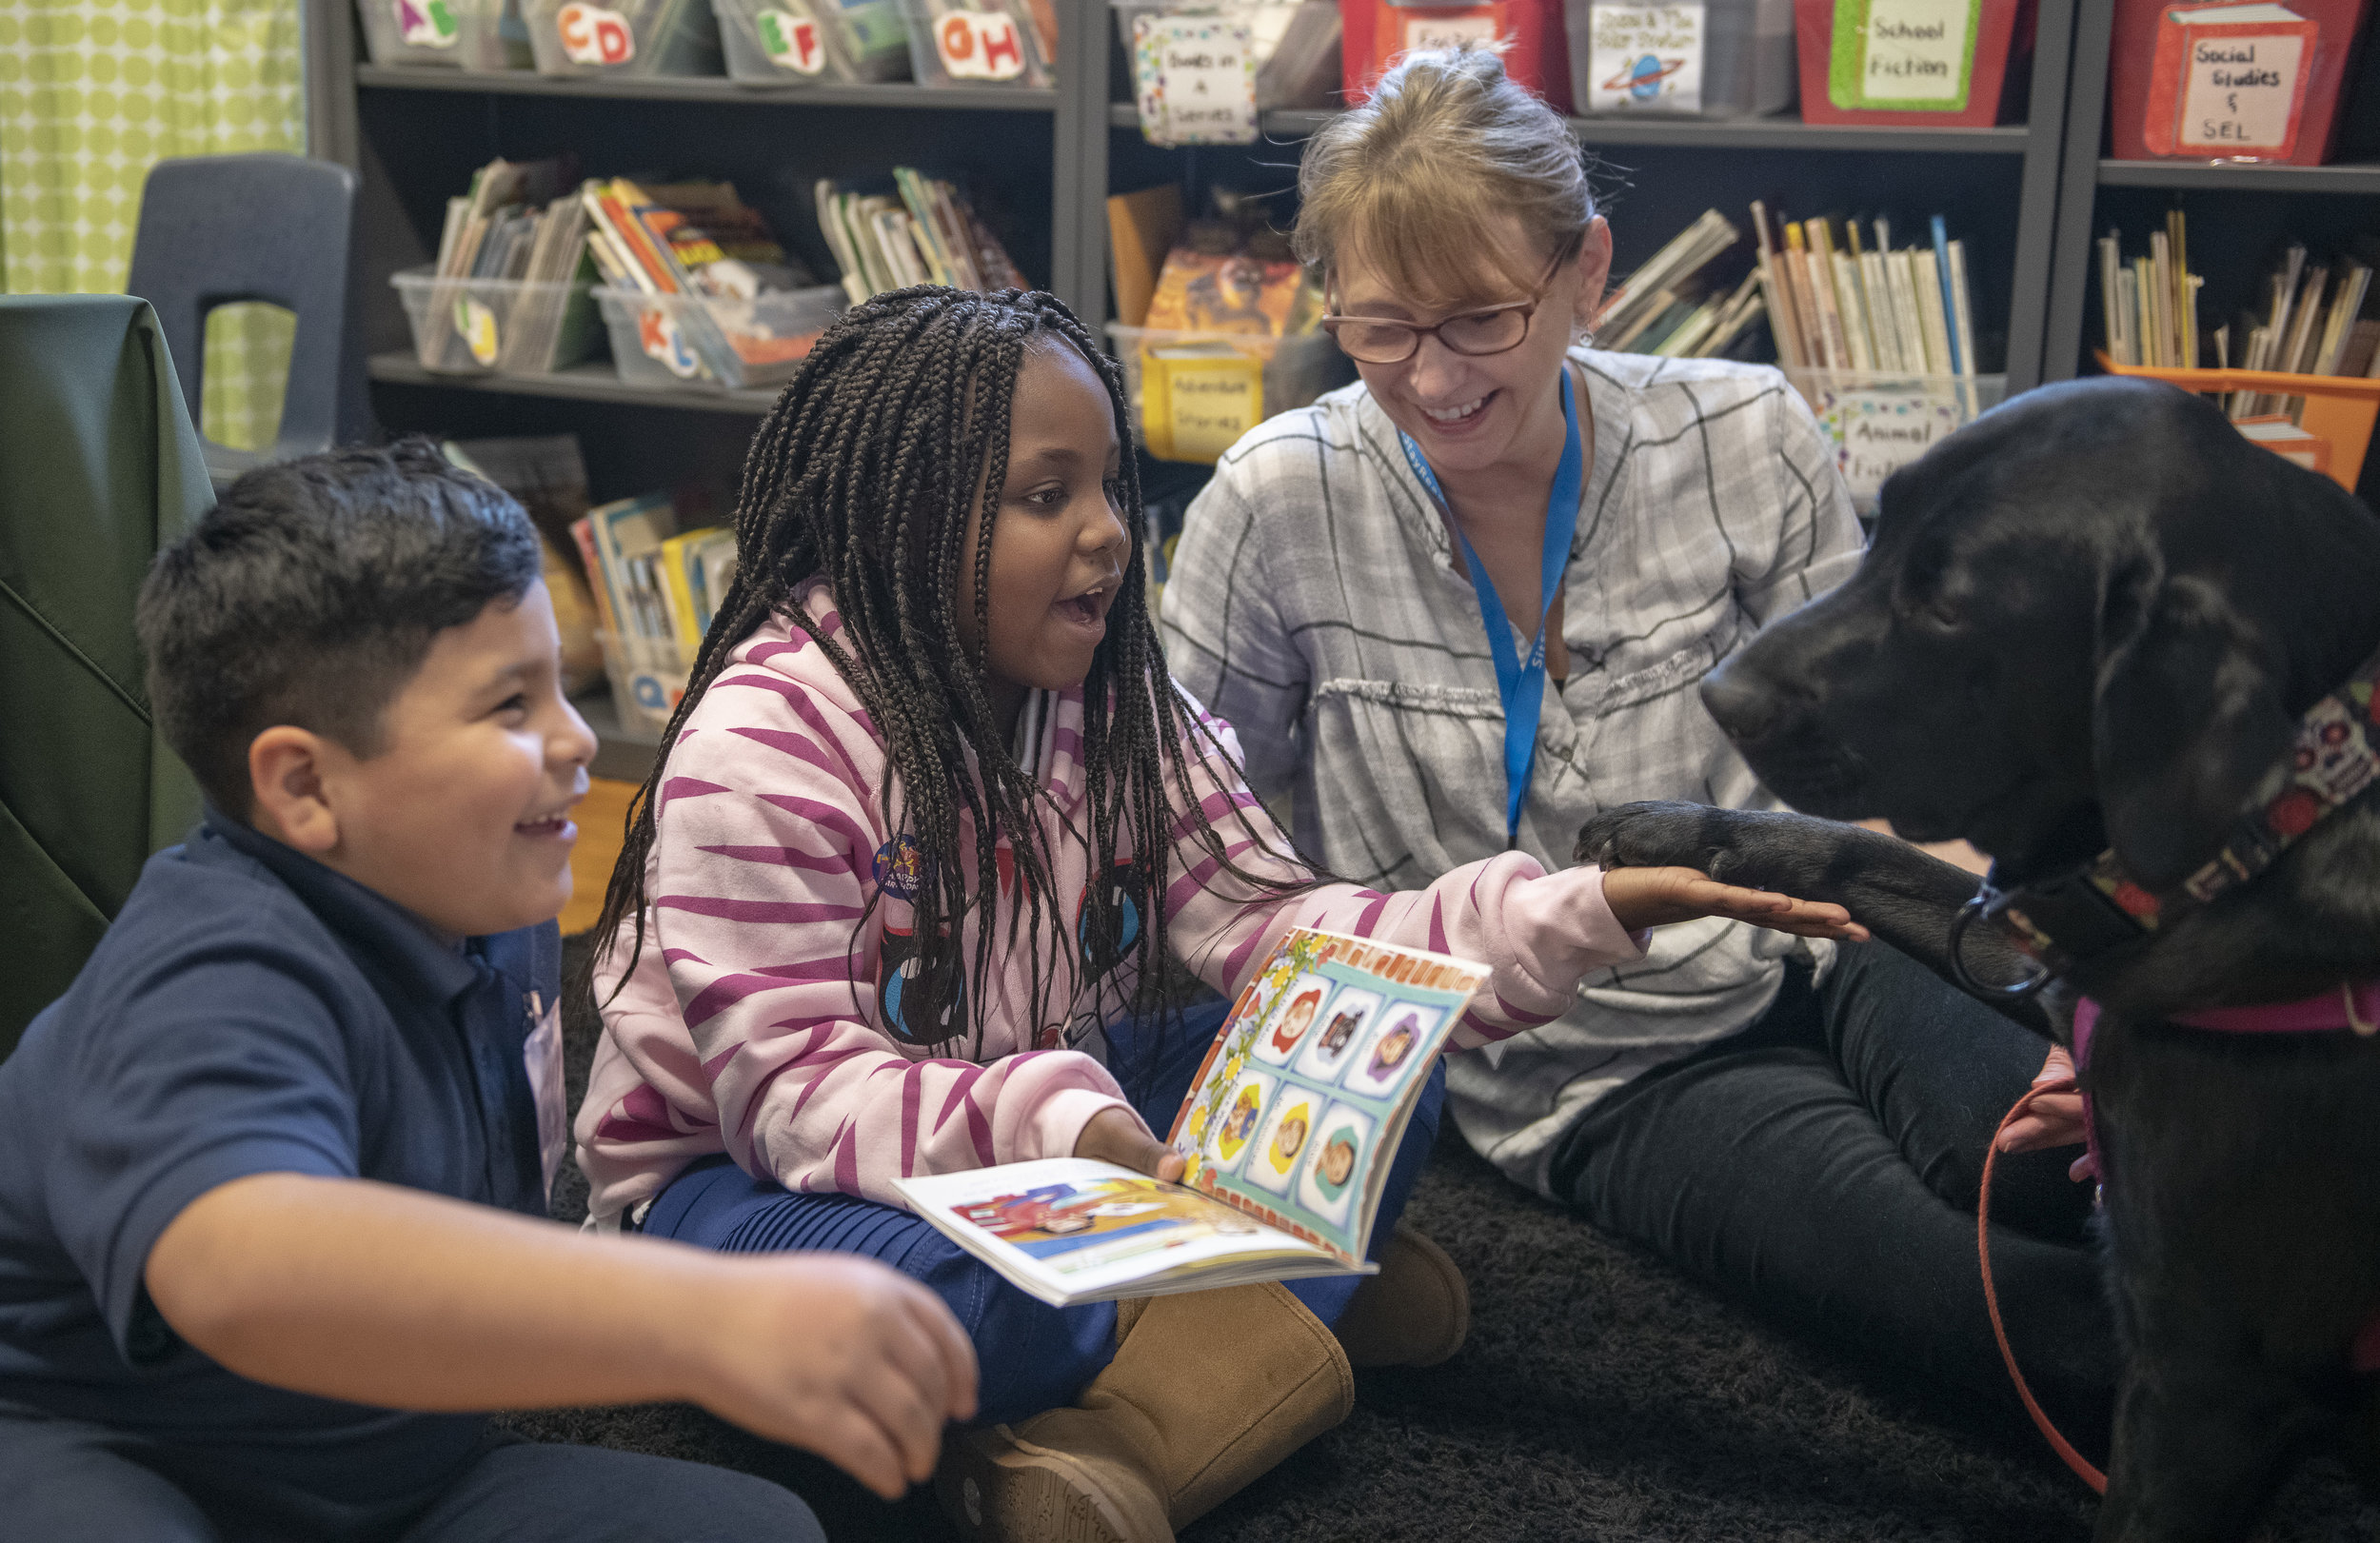 Dog Team volunteer Lisa Sall with her Certified Reading Assistance Dog Jinks reading with students in a Tail Blazers program at Marquette Elementary. (J. Sall)